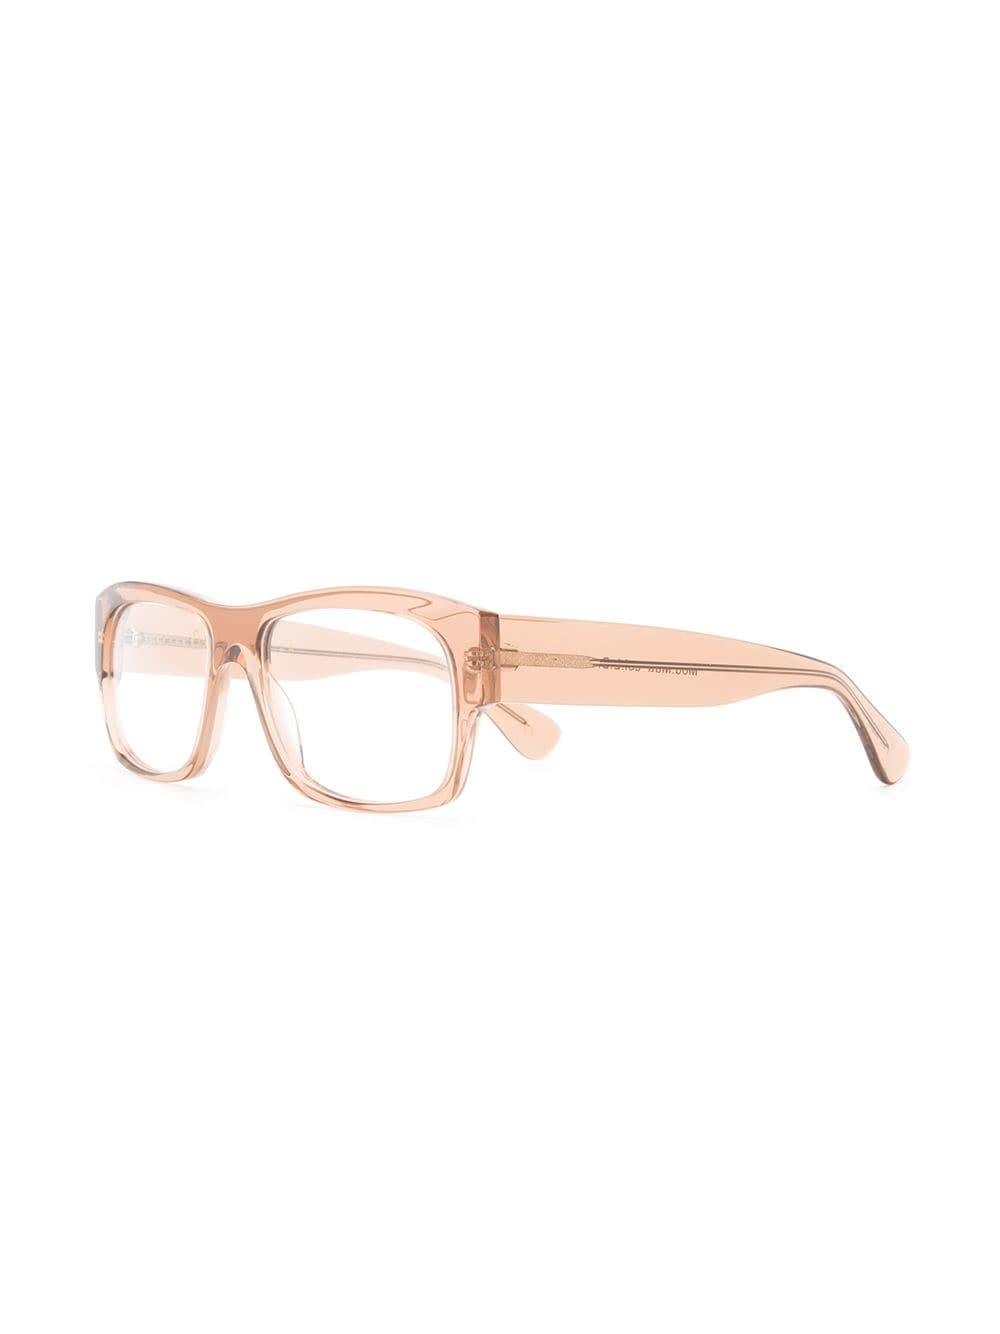 c236830c04 Lesca - Brown Rectangle Frame Glasses - Lyst. View fullscreen